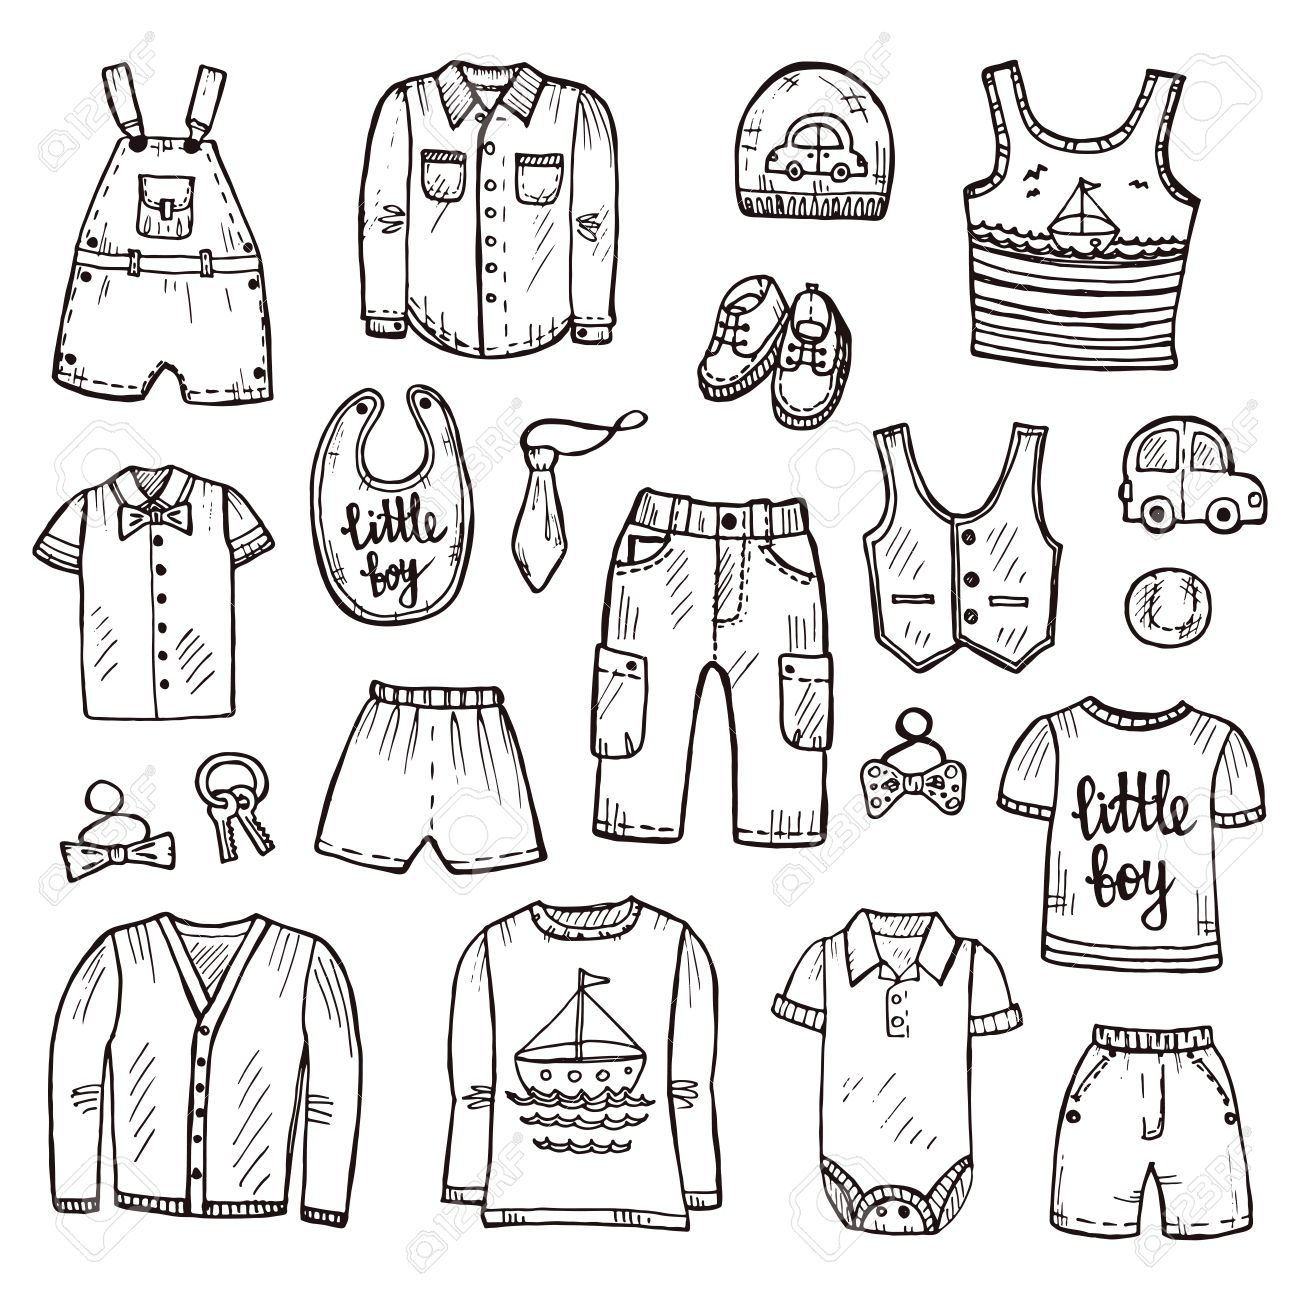 Set Of Cute Hand Drawn Clothes For Baby Boy Including Shirt